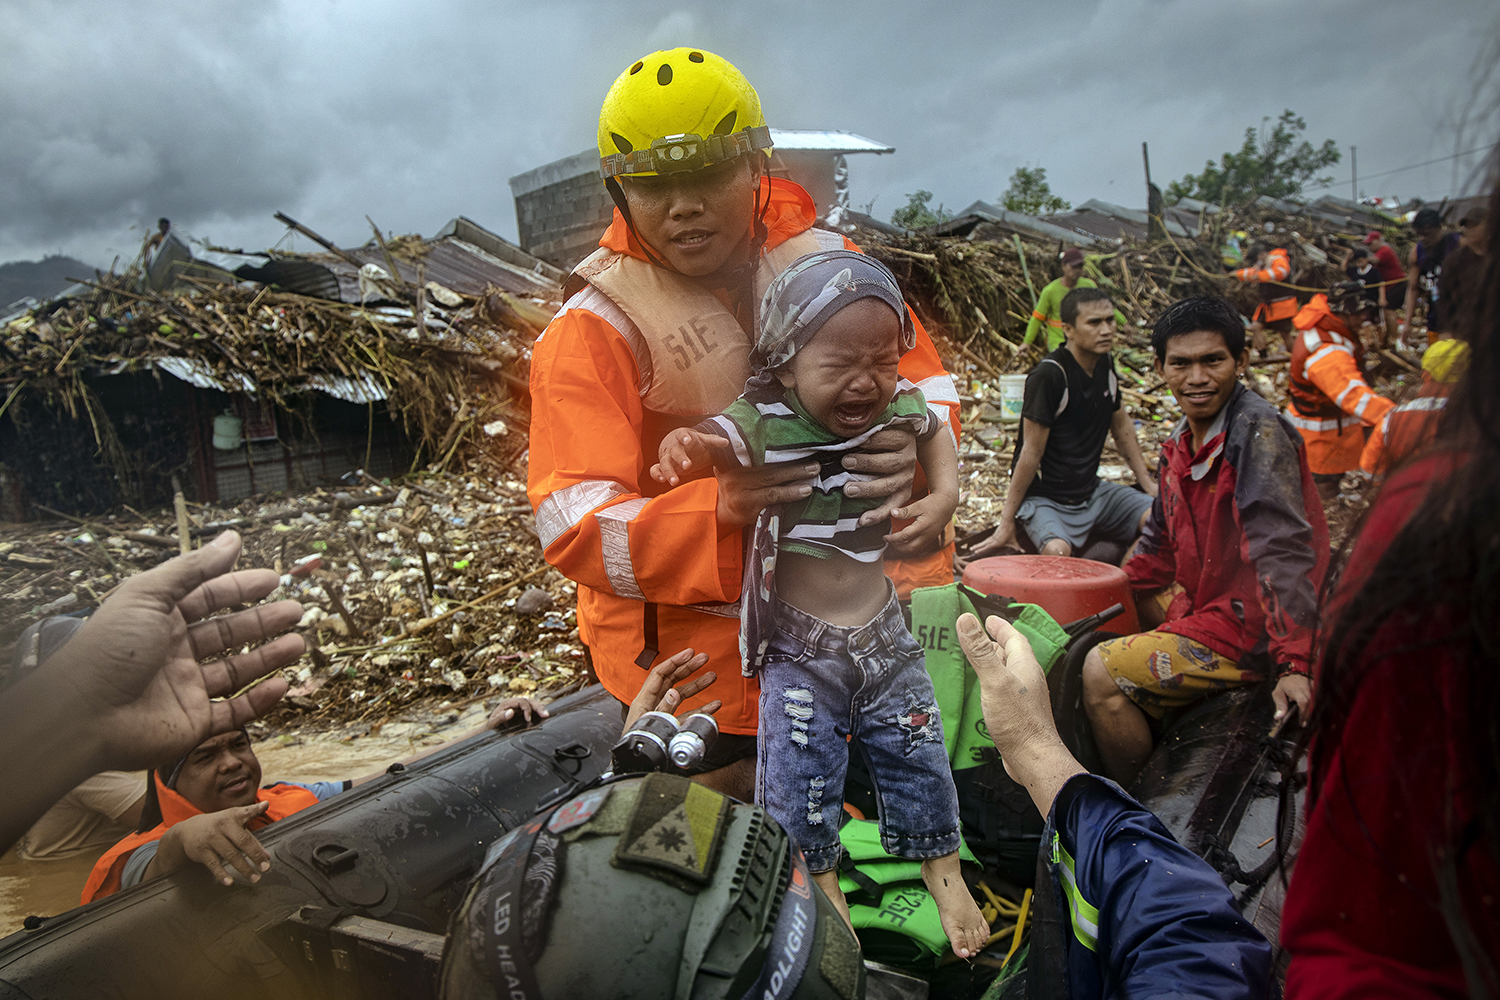 A rescuer carries a baby as floodwaters continue to rise in the submerged village of Rodriguez, Philippines, on Nov. 12 after the passage of Typhoon Vamco. The storm, equivalent to a Category 4 hurricane, battered the Philippines, causing widespread flooding and destruction in areas still reeling from the effects of Super Typhoon Goni. Ezra Acayan/Getty Images